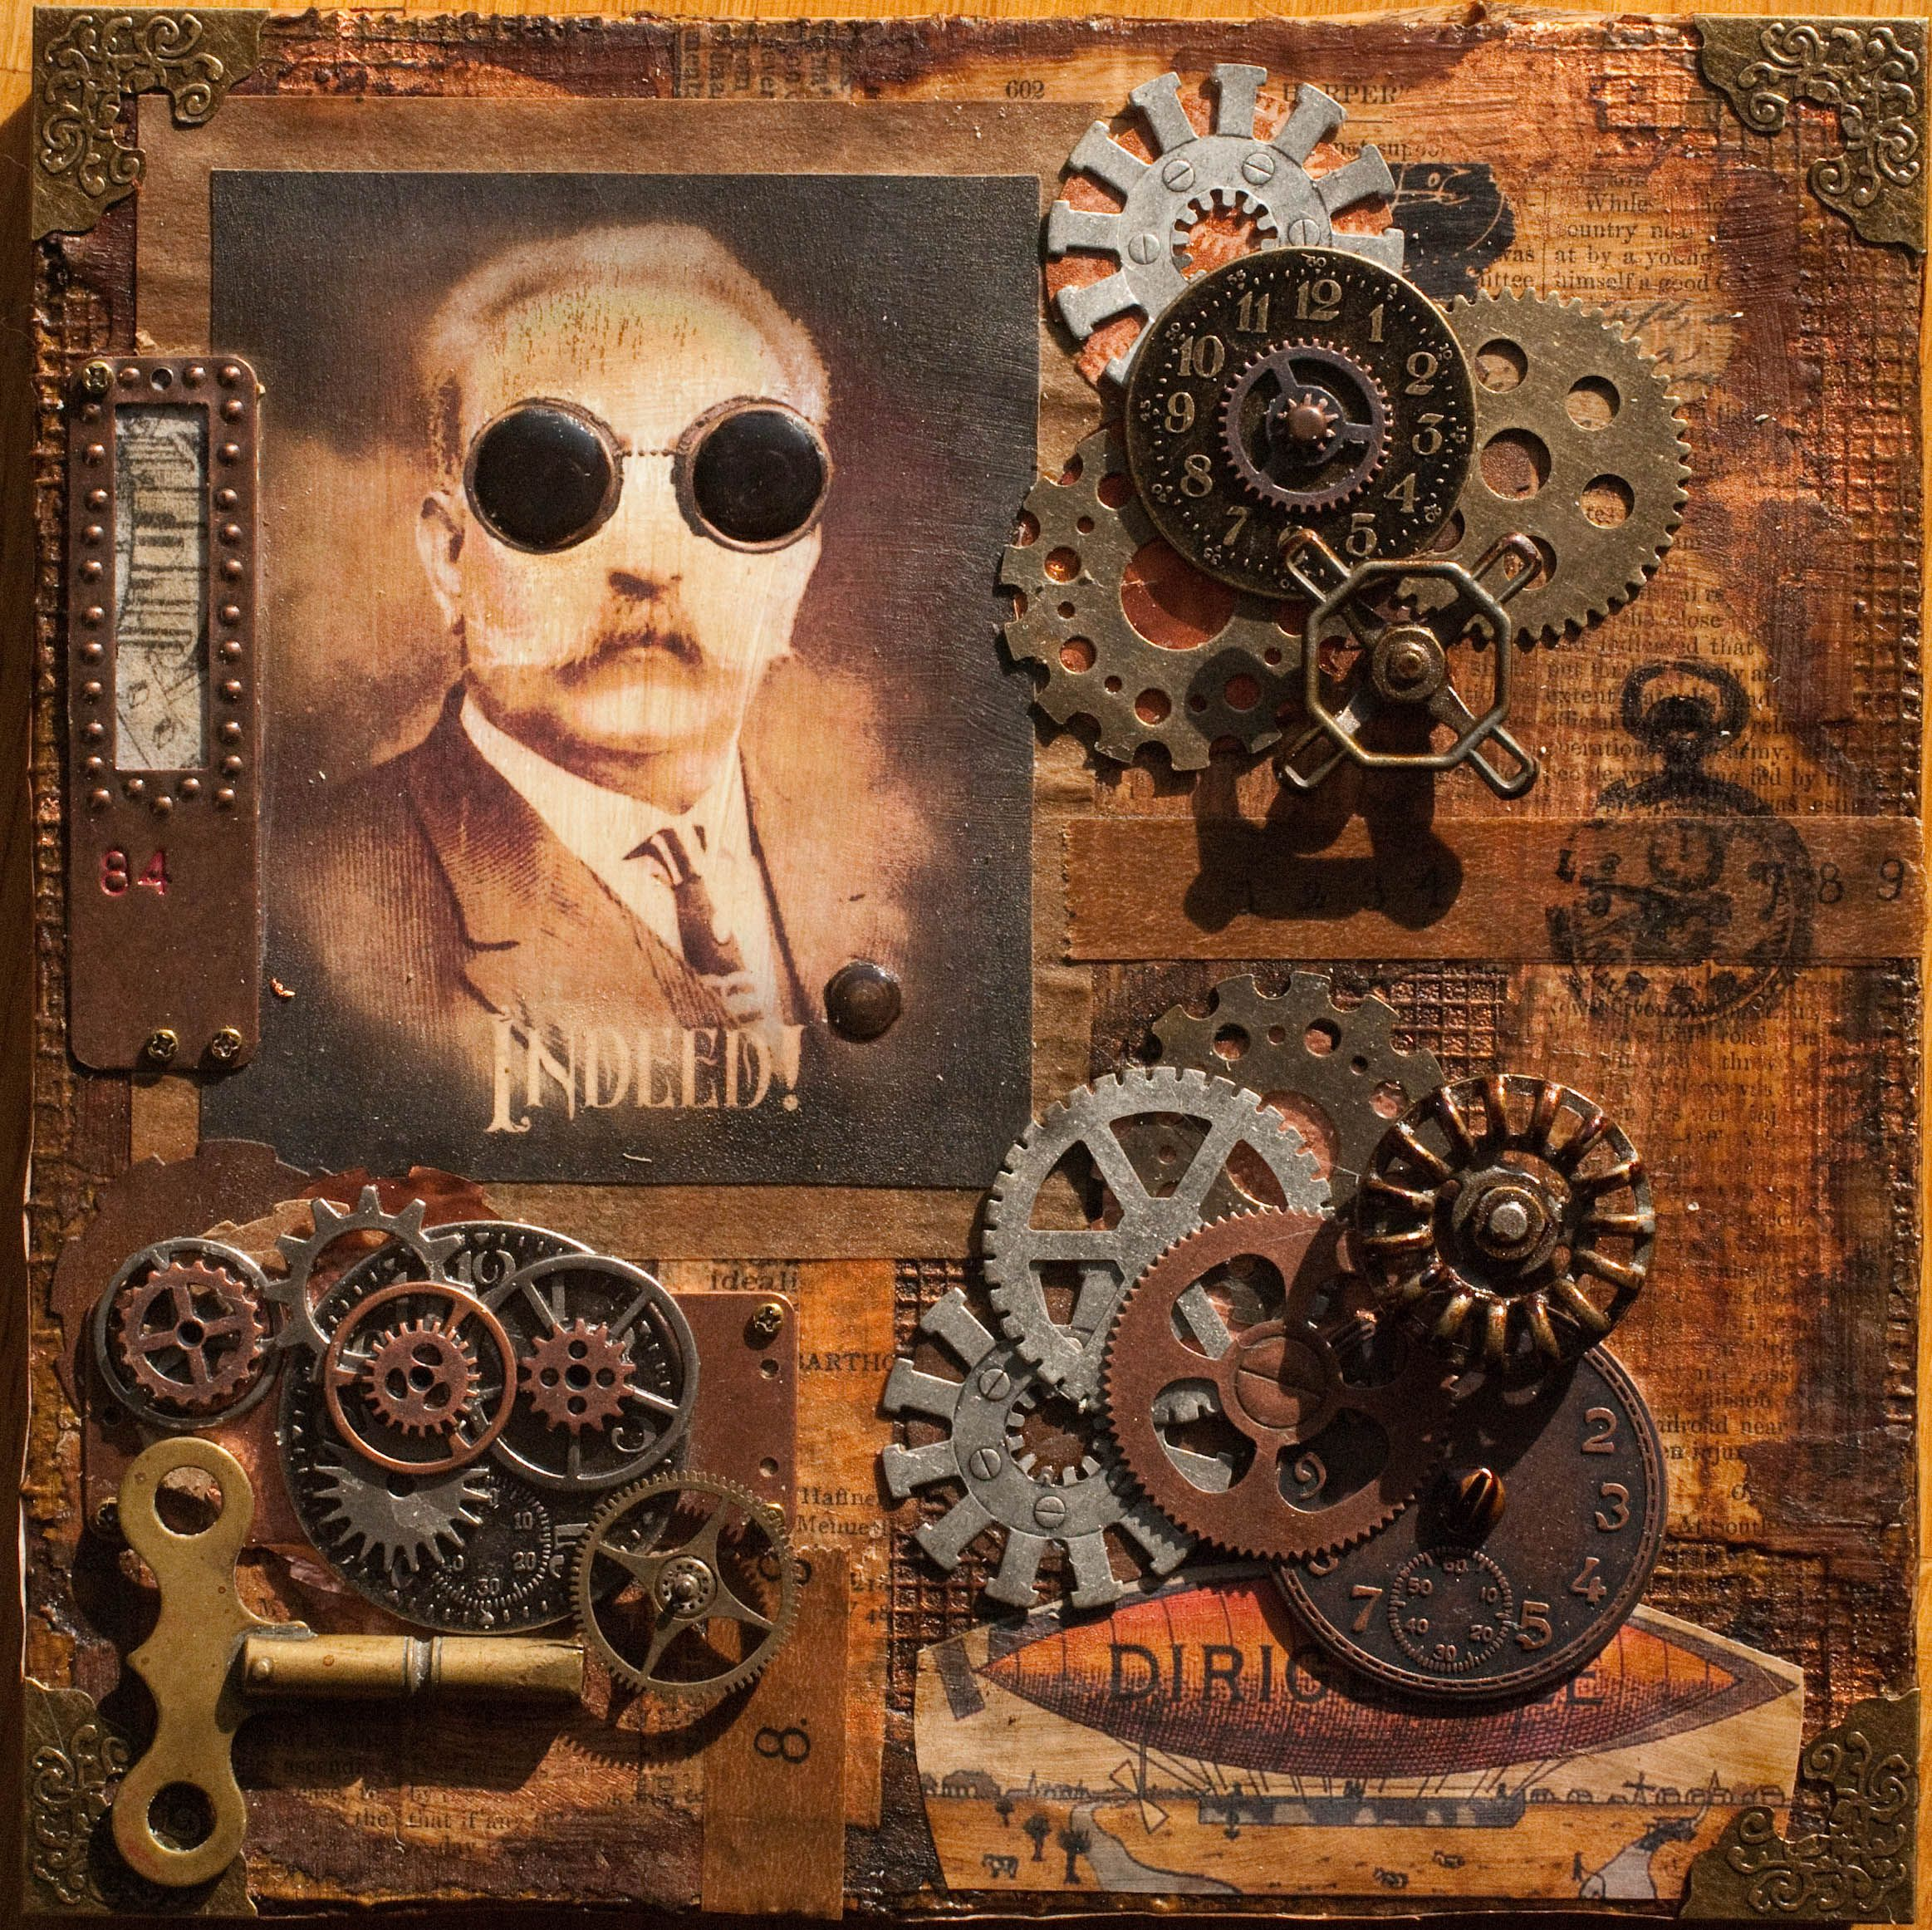 Steampunk Ideas Collect Gallery Quality Art Prints And Other Products By